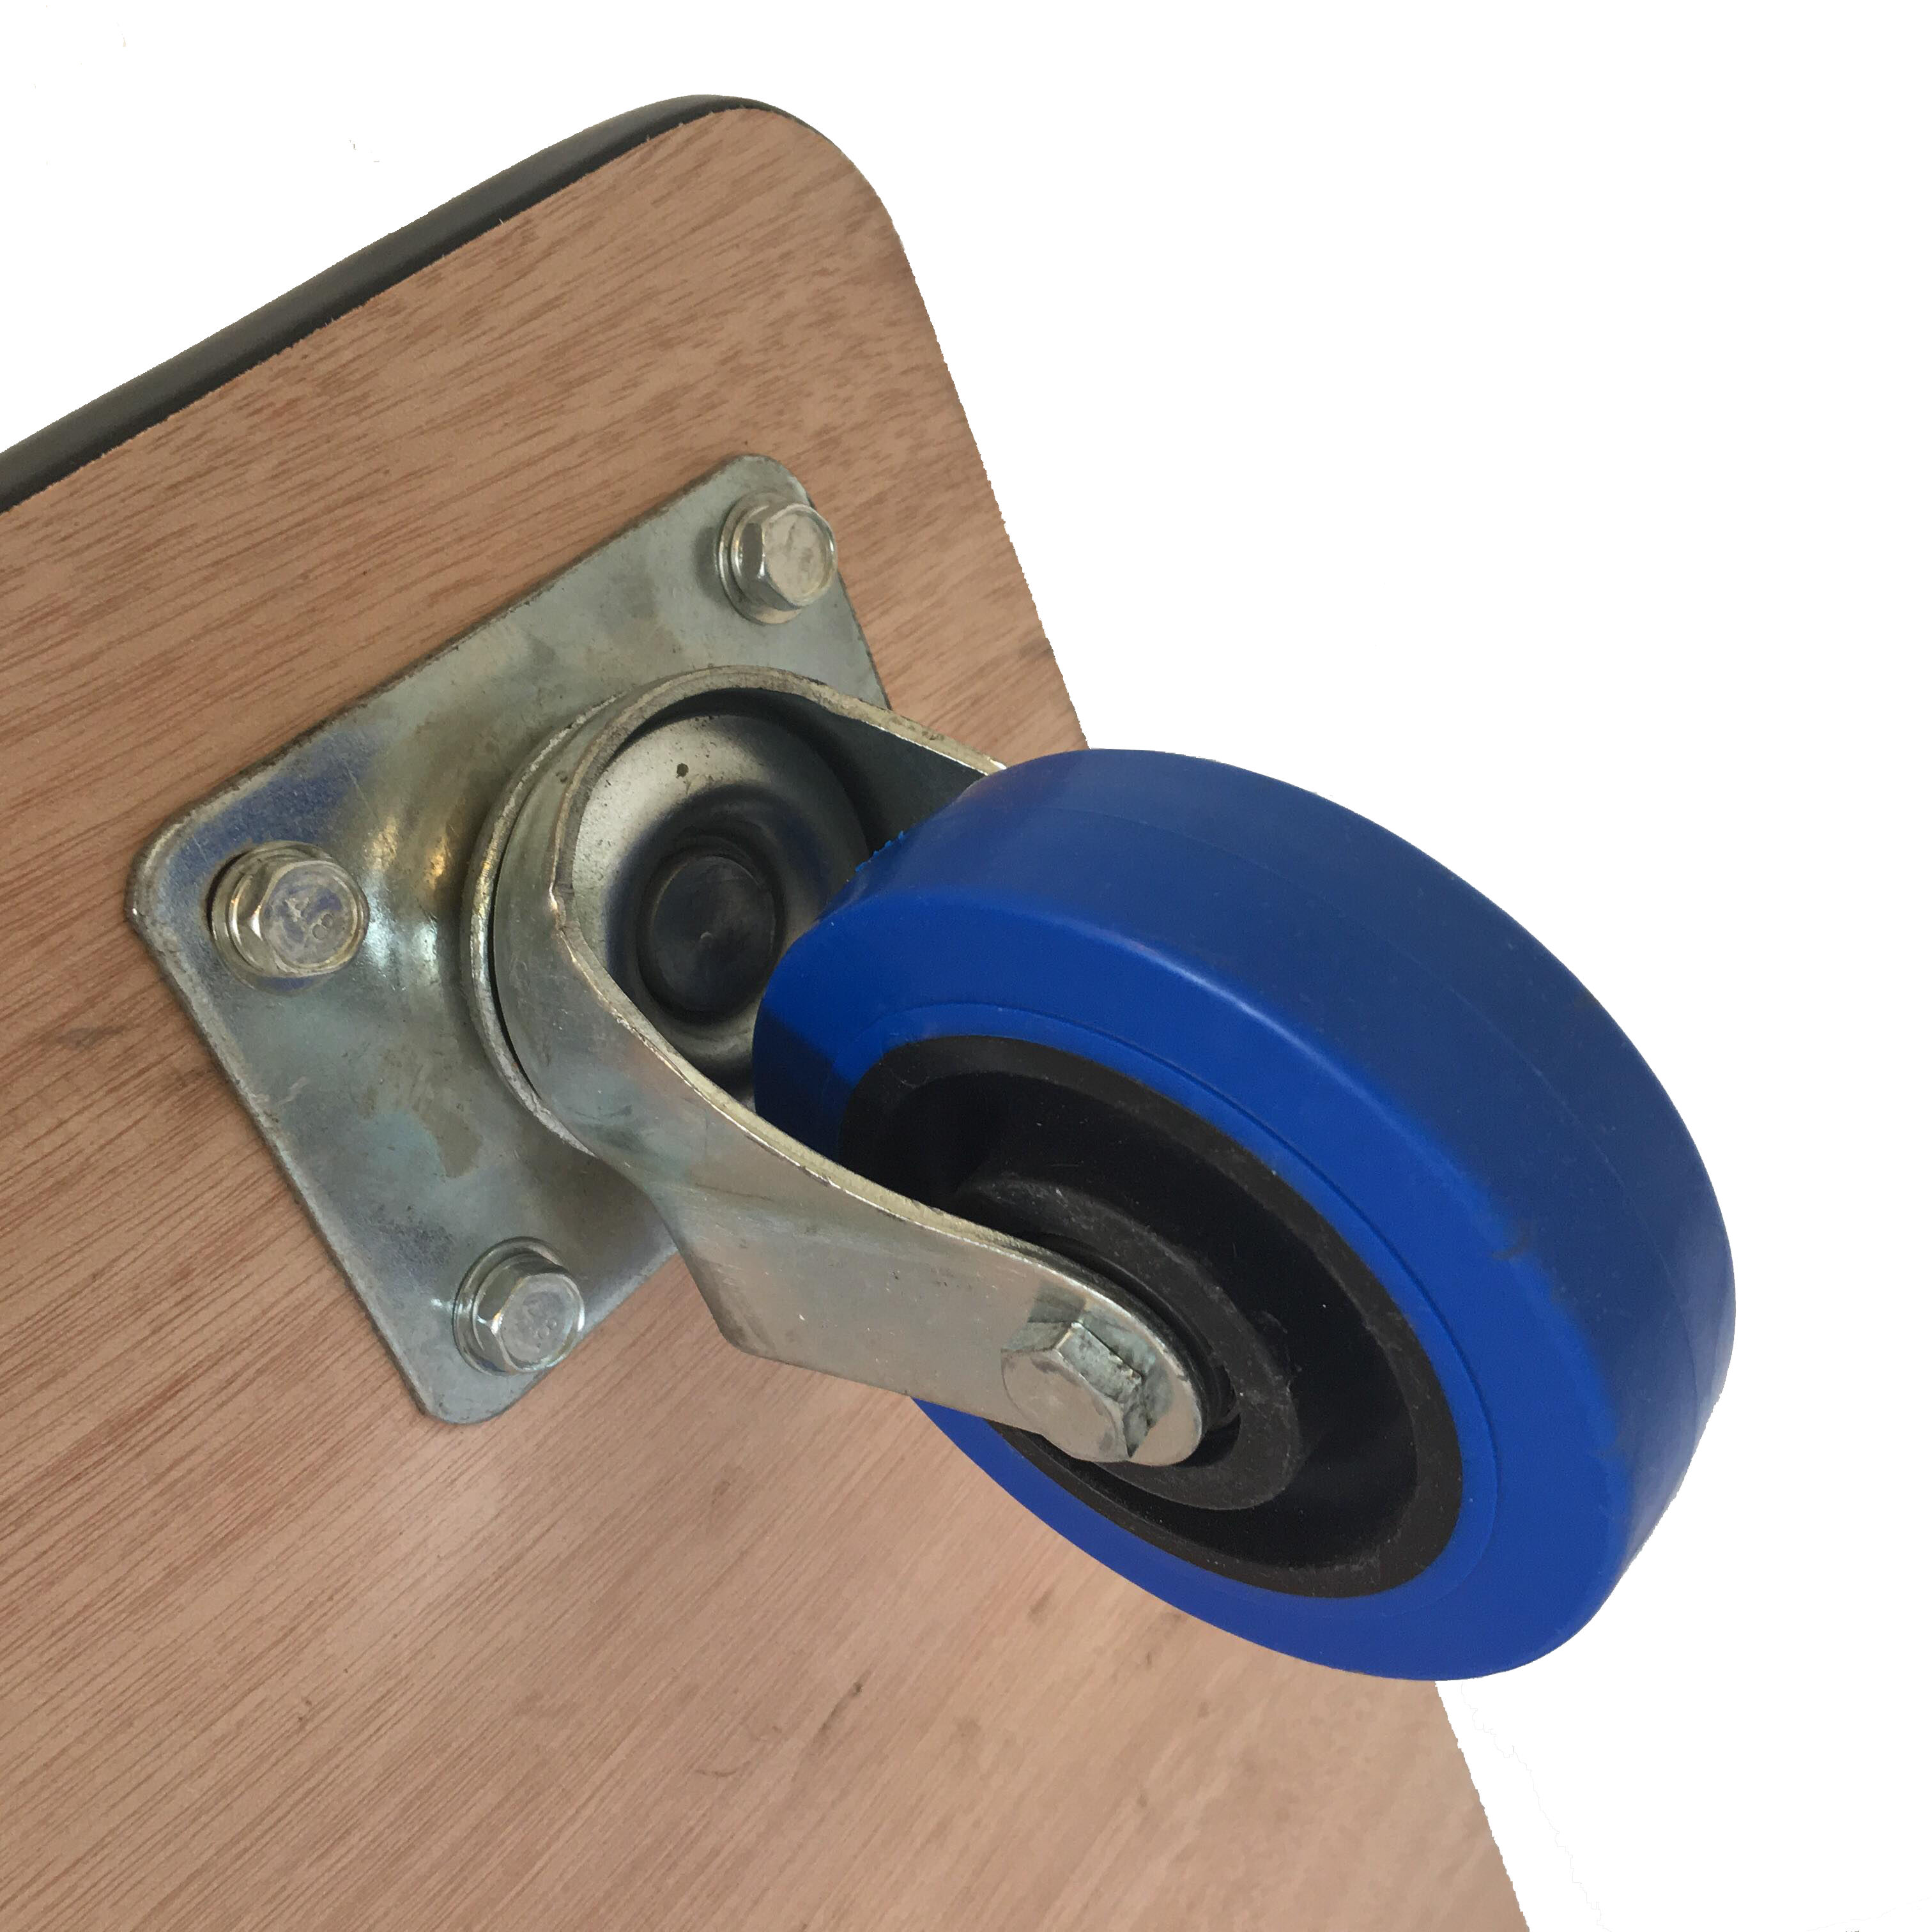 Detail of 480mm rubber edged dolly